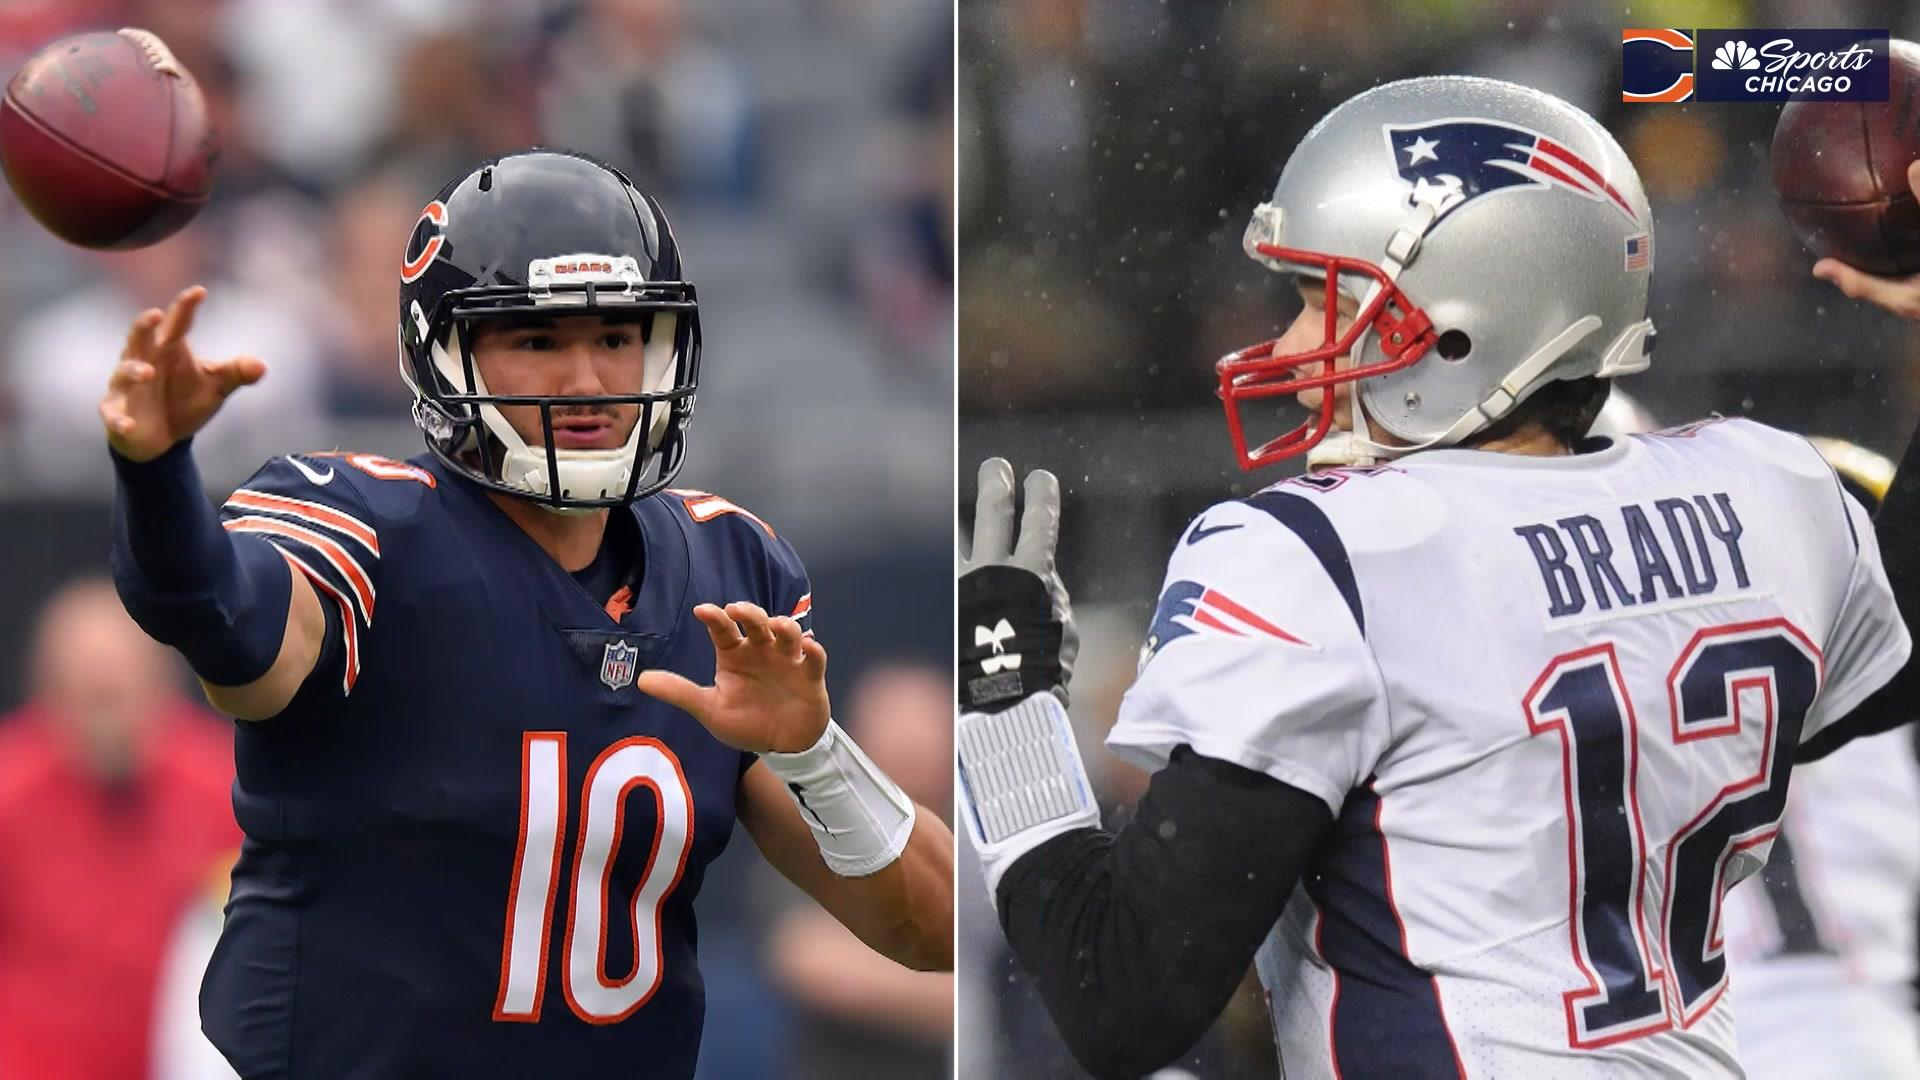 Comparing Tom Brady and Mitchell Trubisky in their first 17 NFL games